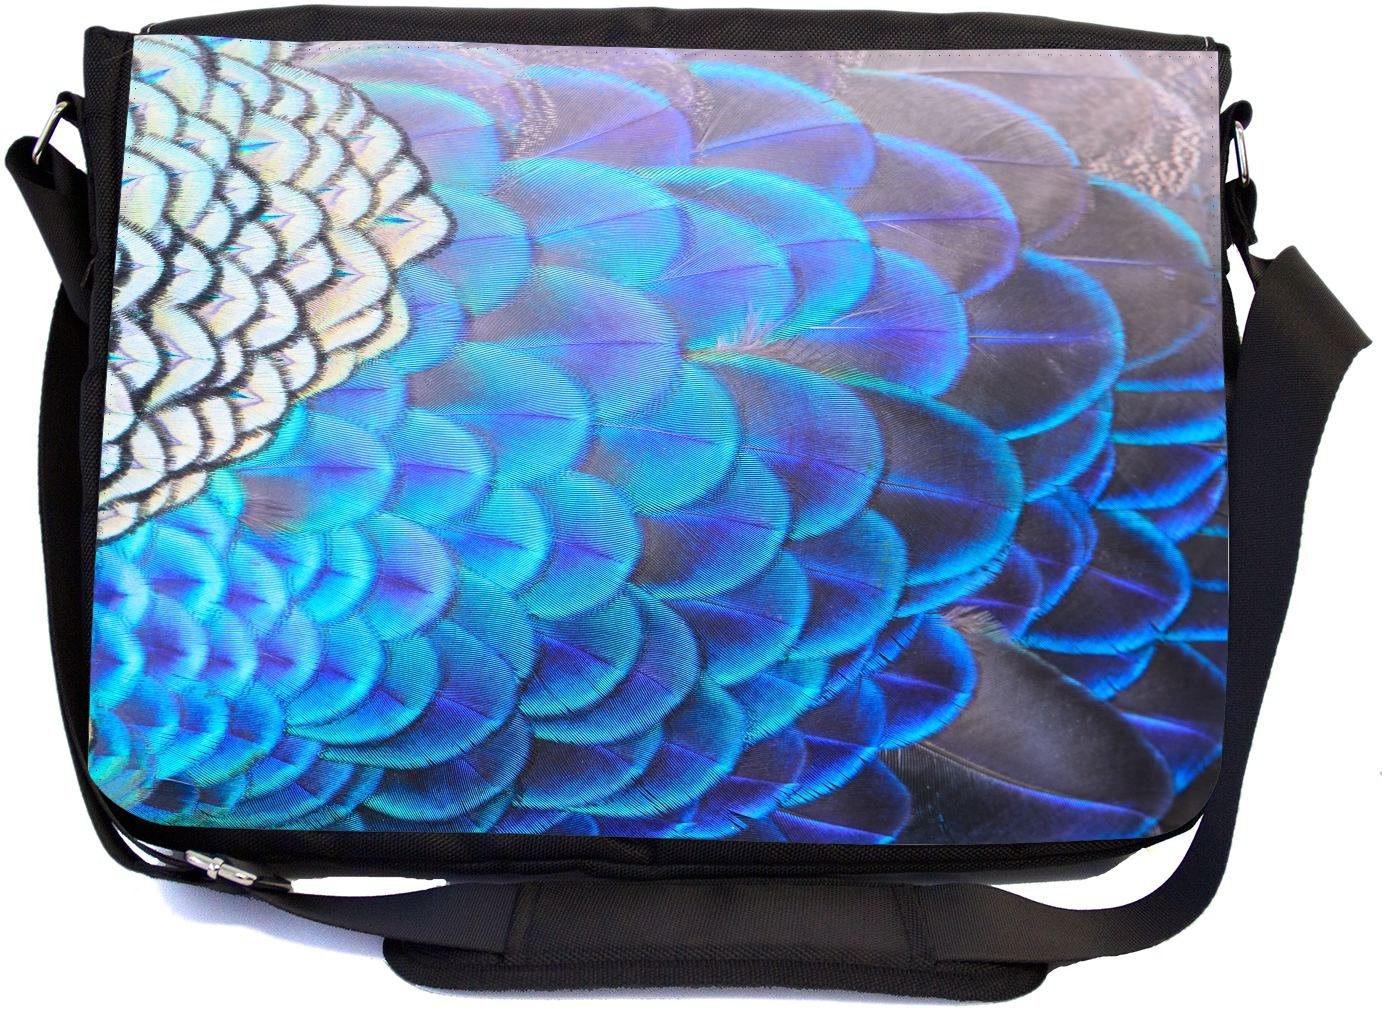 73c164f16653 Rikki Knight Blue Peacock Feathers Design Multifunctional Messenger ...